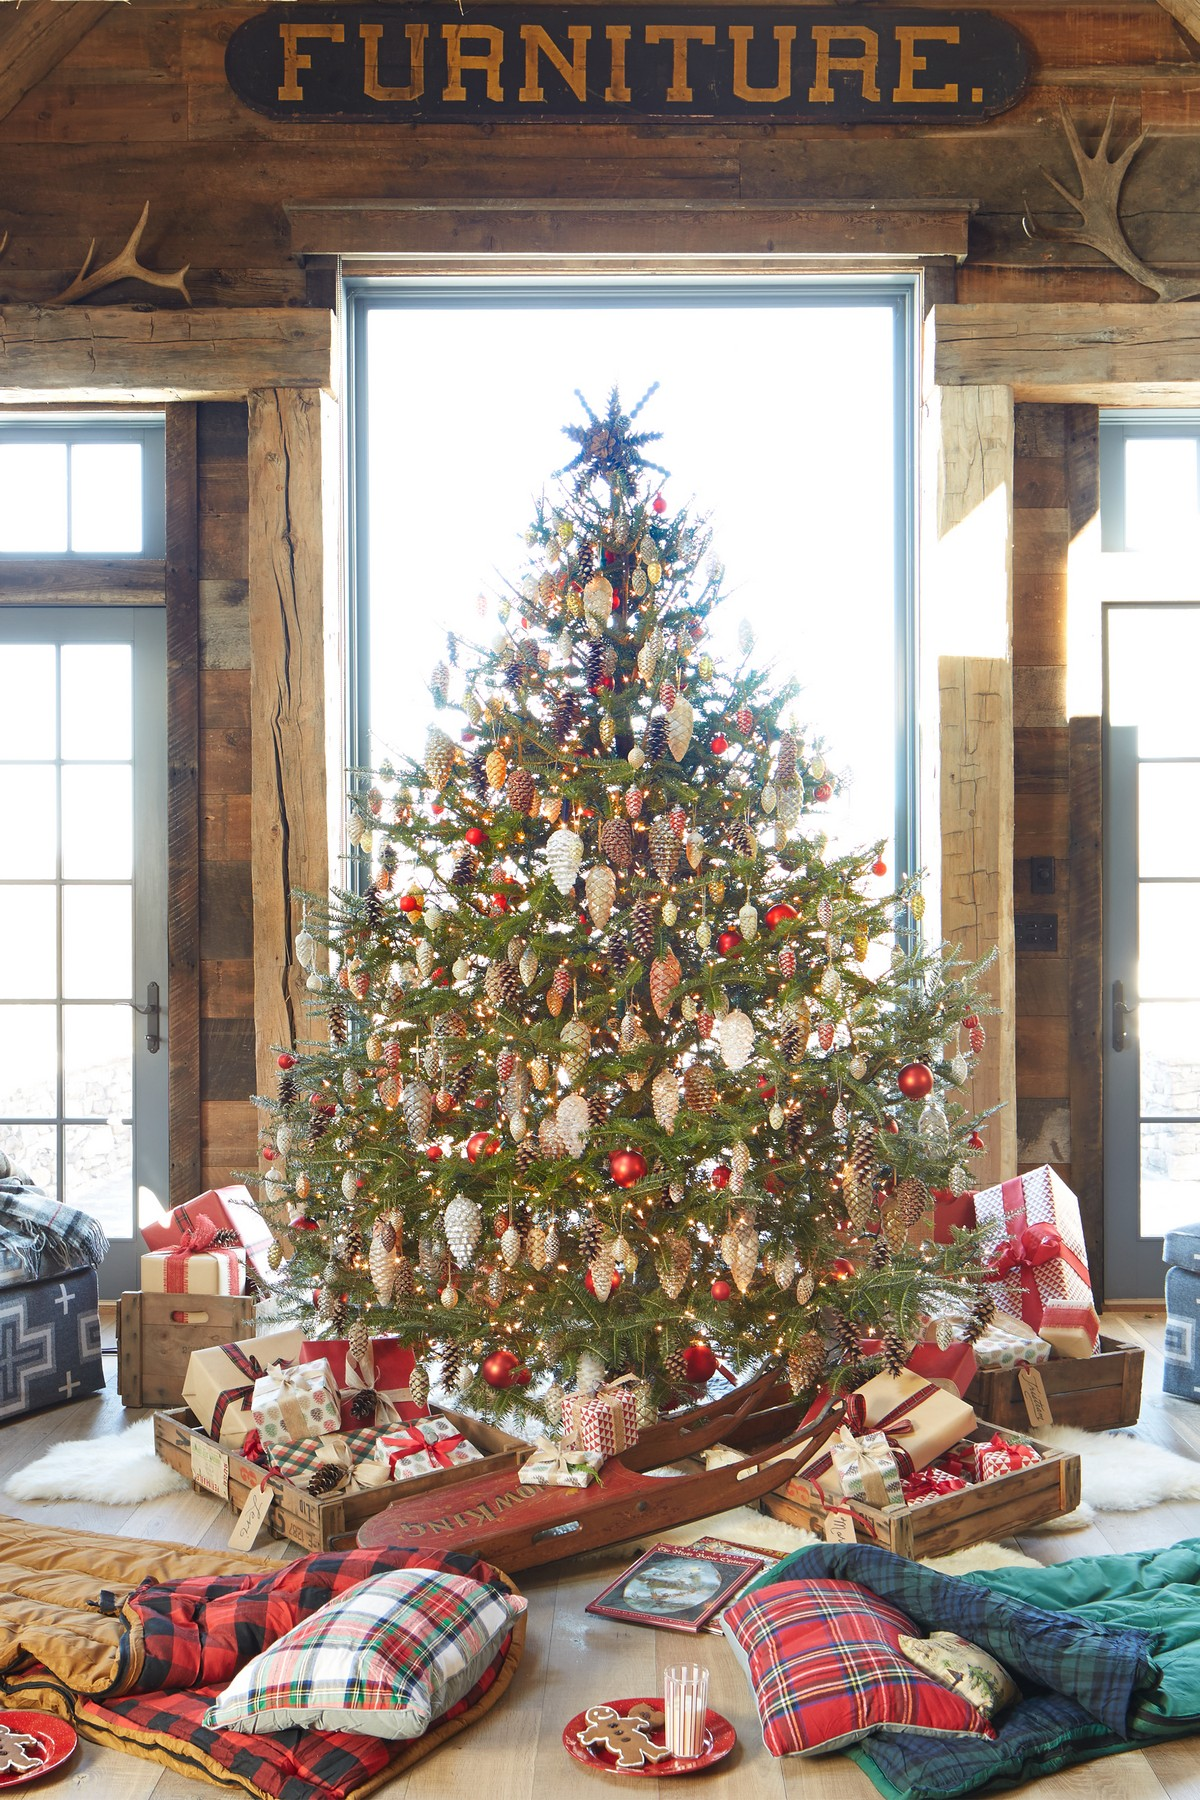 6 Mesmerizing Ways To Decor Your Christmas Tree This Holiday | Streets are already starting to shine with all of the traditional fairy lights that warm up people's hearts. #christmasdecor #christmastree #homedecor #fairylights #christmasspirit #interiordesign  6 Mesmerizing Ways To Decor Your Christmas Tree This Holiday 1477510018 clx010115wellperkins 09